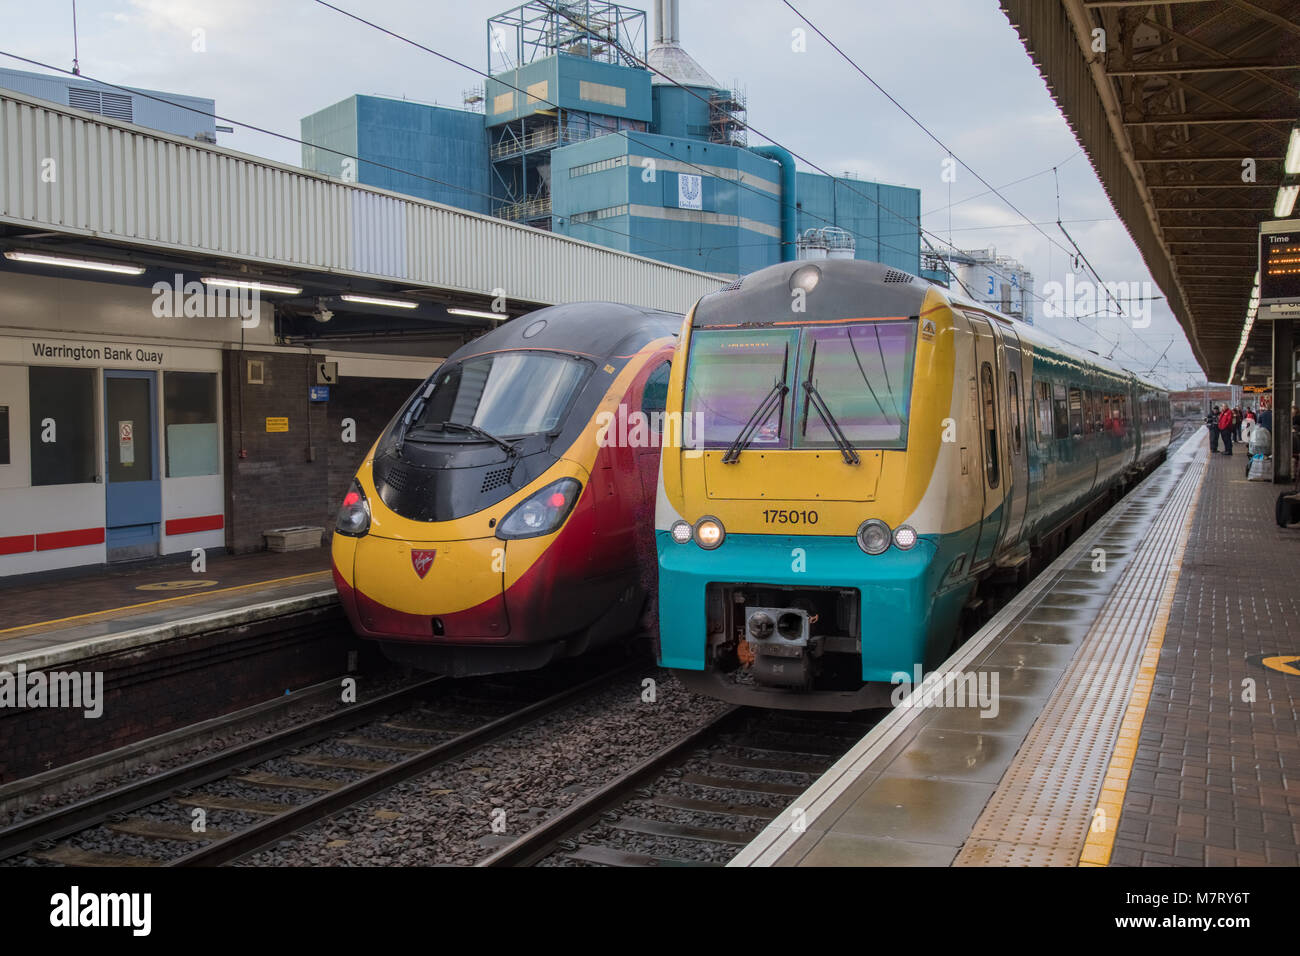 Two different generation Alstom manufactured trains at Warrington Bank Quay. On the left is a Class 390 Pendolino Stock Photo